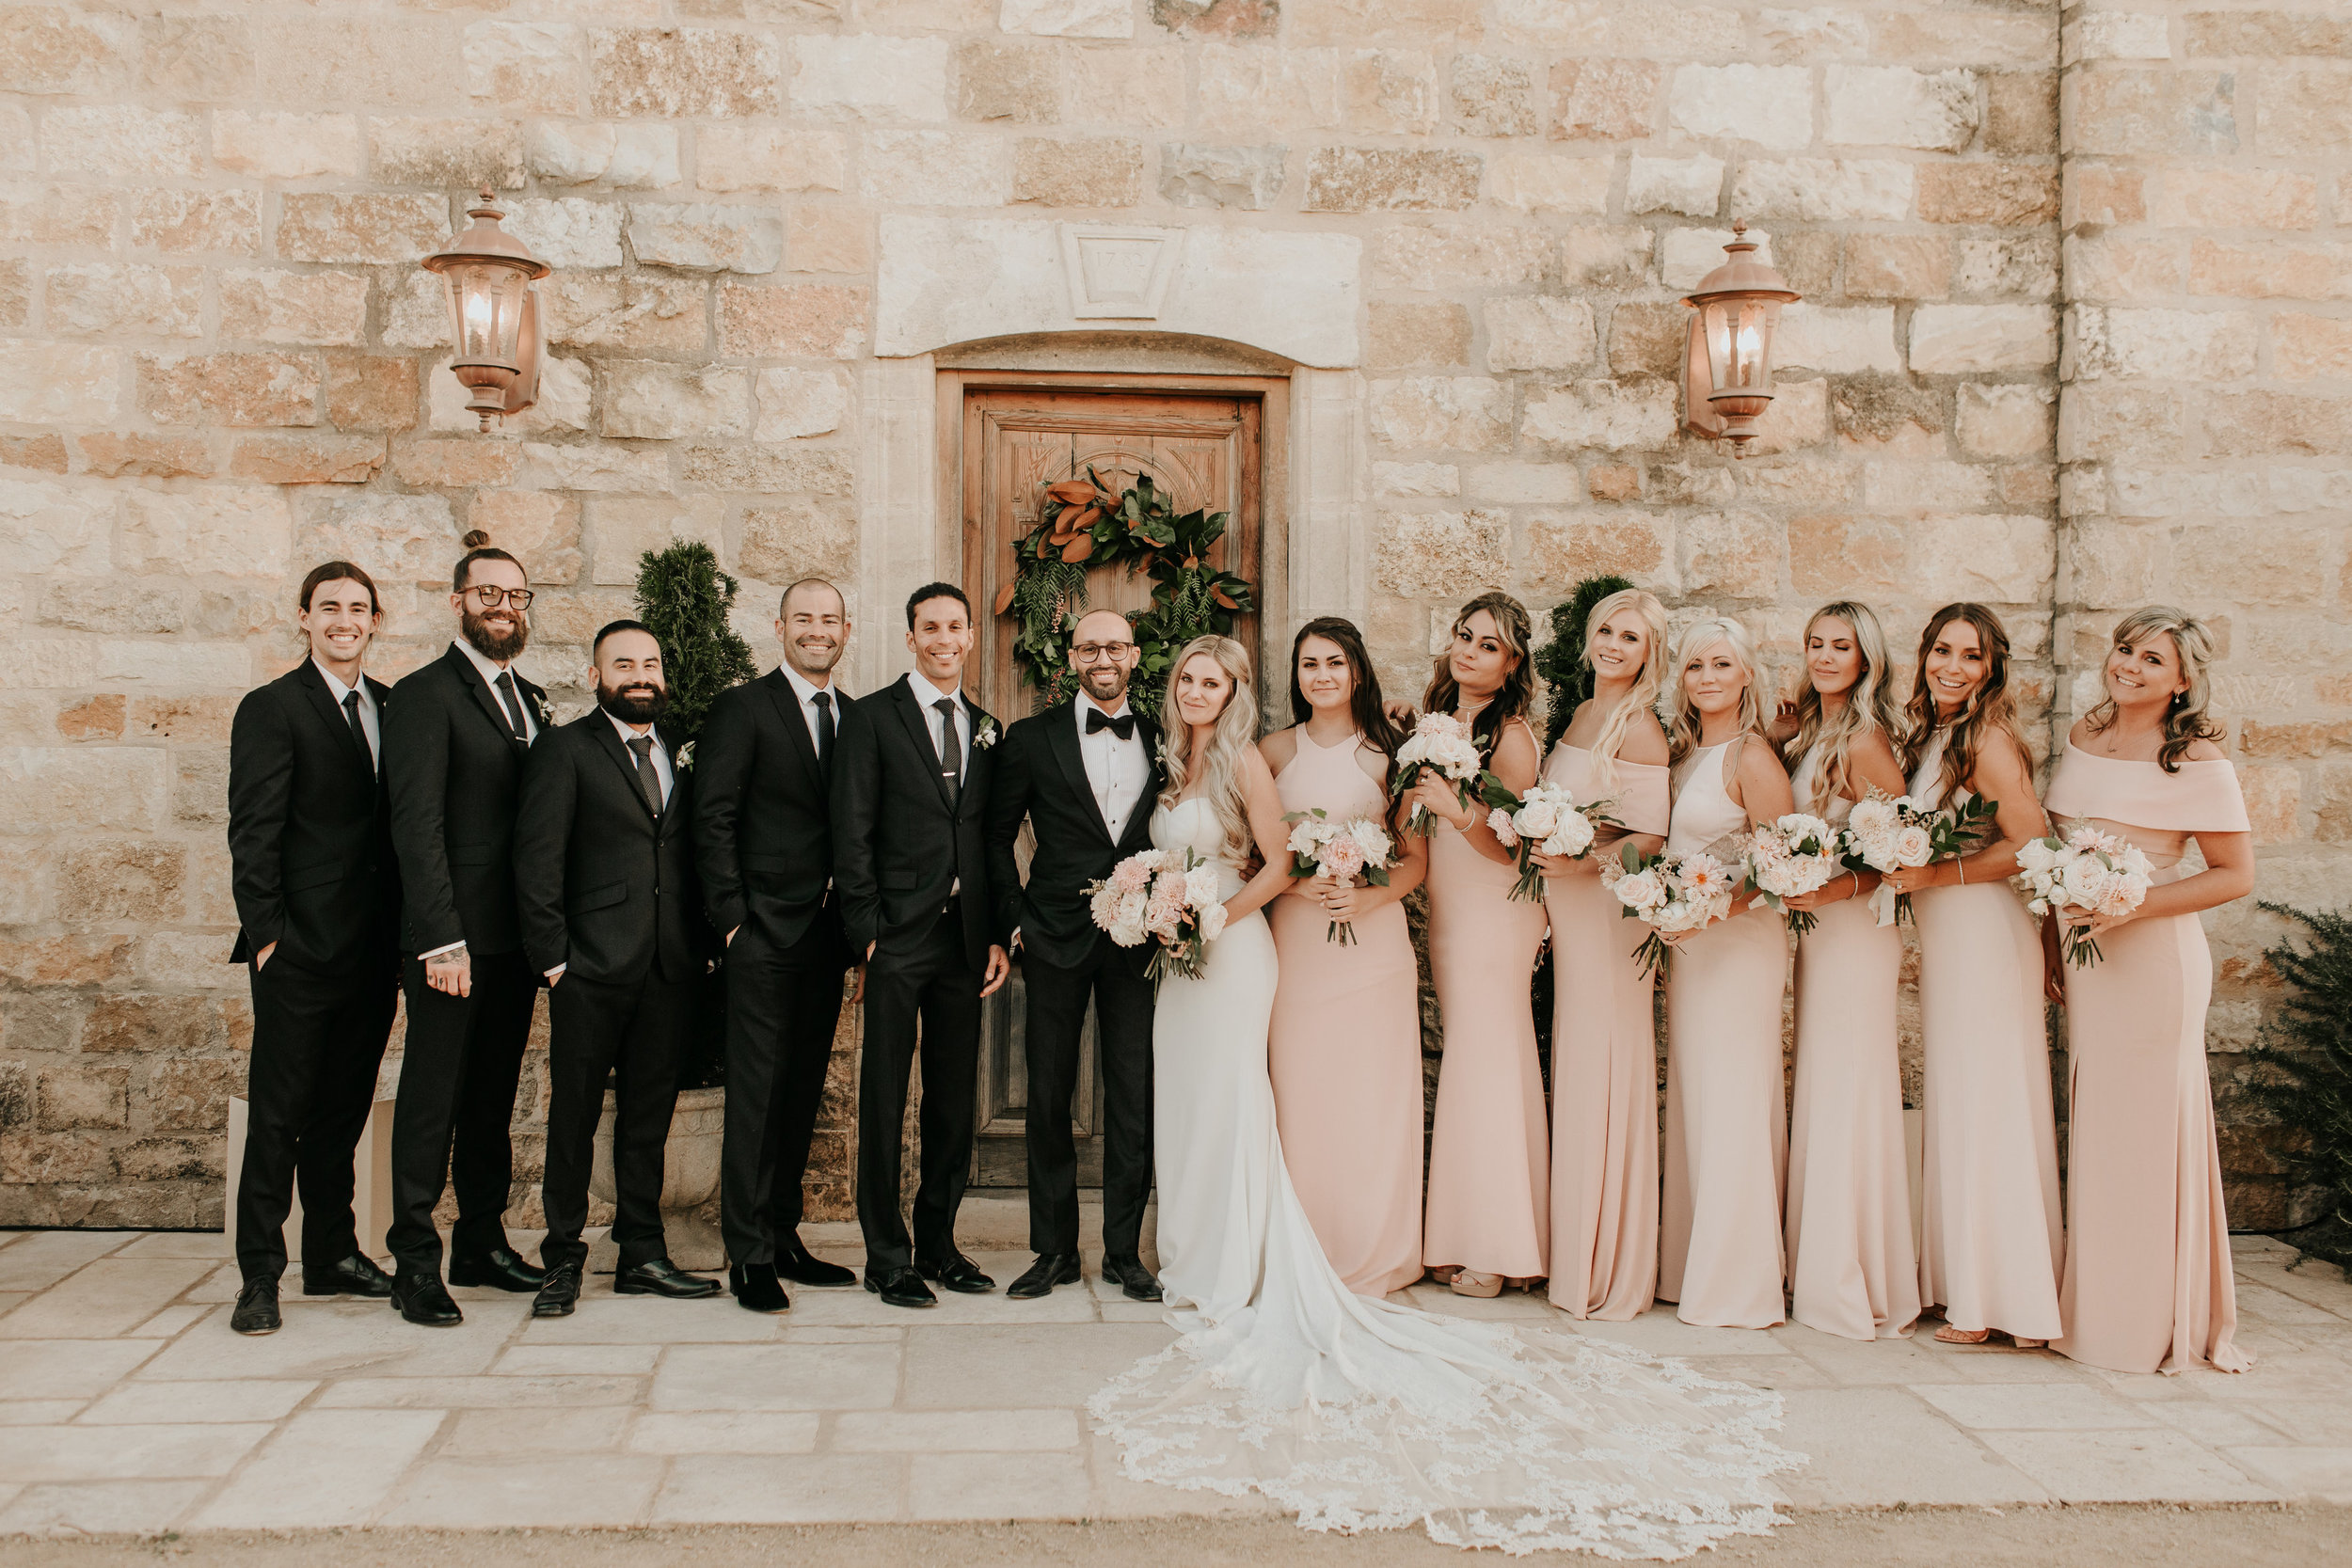 www.santabarbarawedding.com | Alexandria Monette Photography | Sunstone Villa | Soleil Events | Anna le Pley Taylor Flowers | Bridal Party